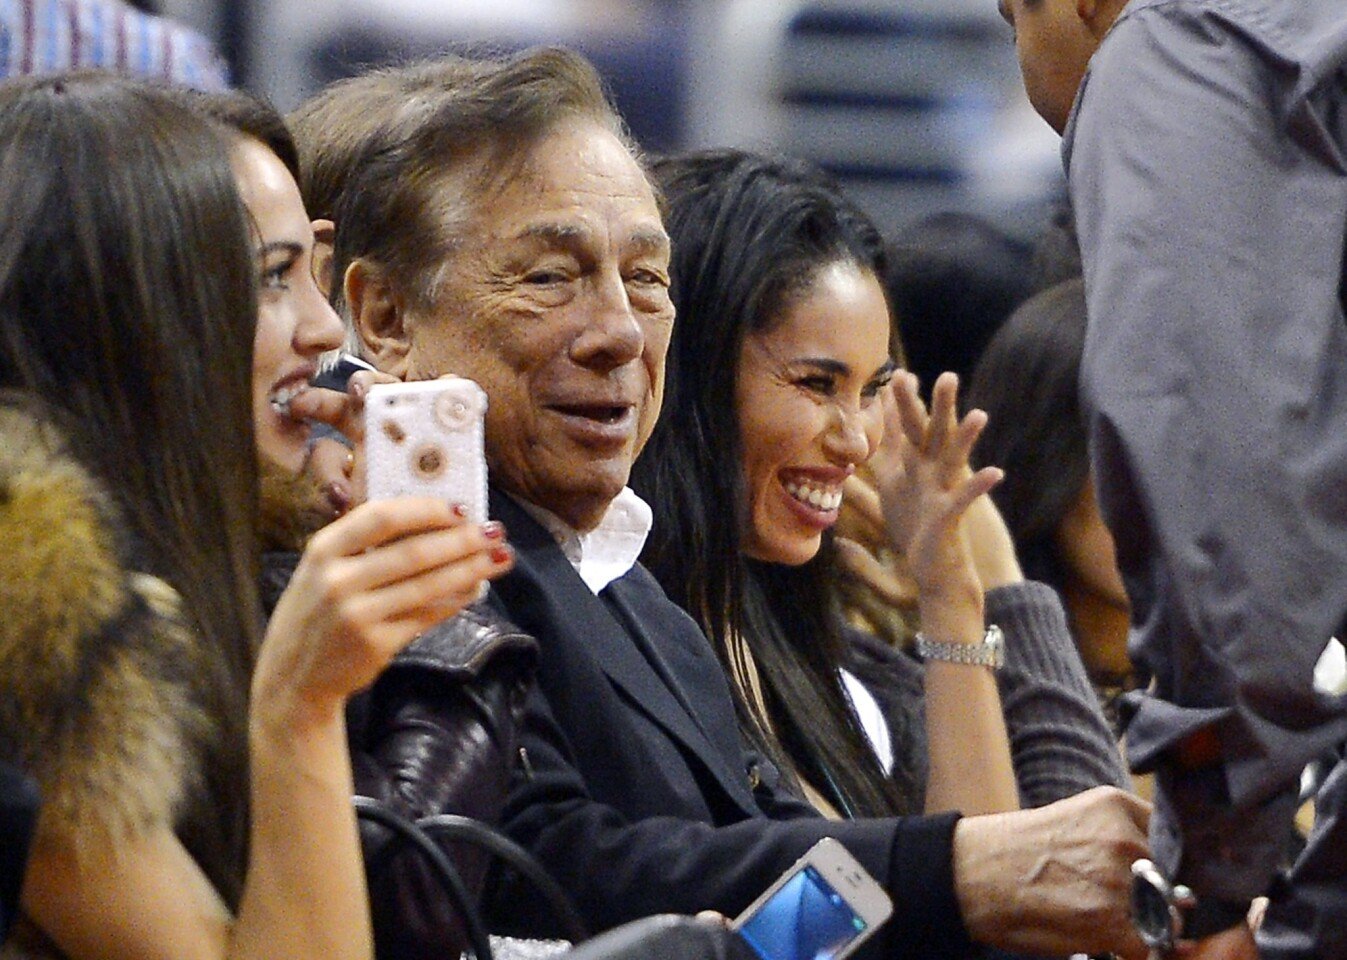 Los Angeles Clippers owner Donald Sterling, center, and V. Stiviano, right, watch the Clippers play the Sacramento Kings at Staples Center.